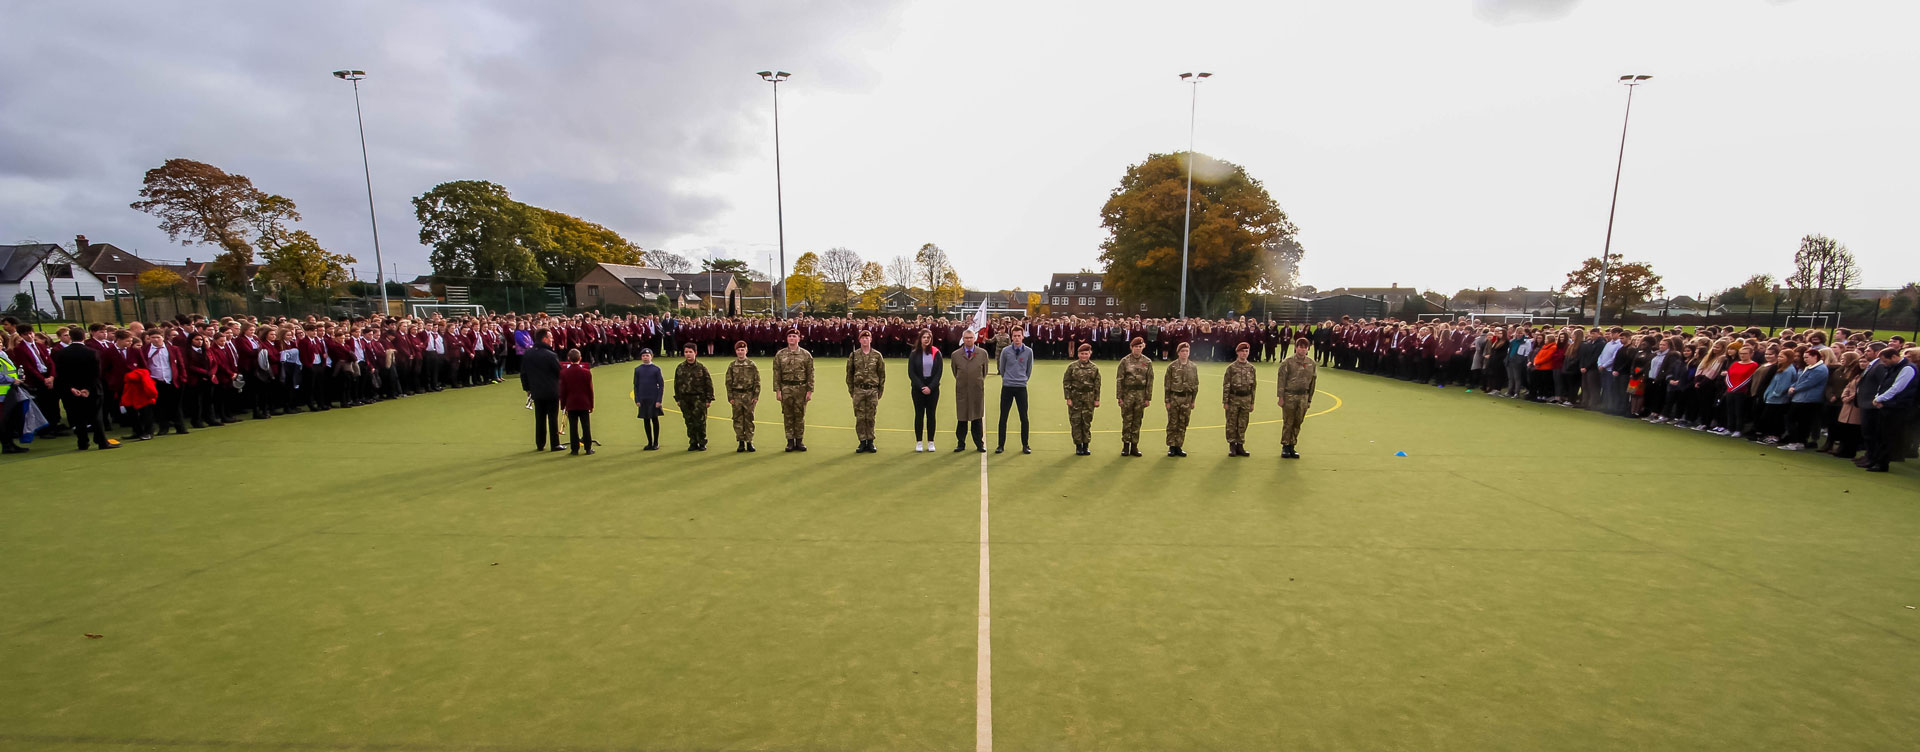 Arnewood Remembers with a 2-minute silence on the astroturf